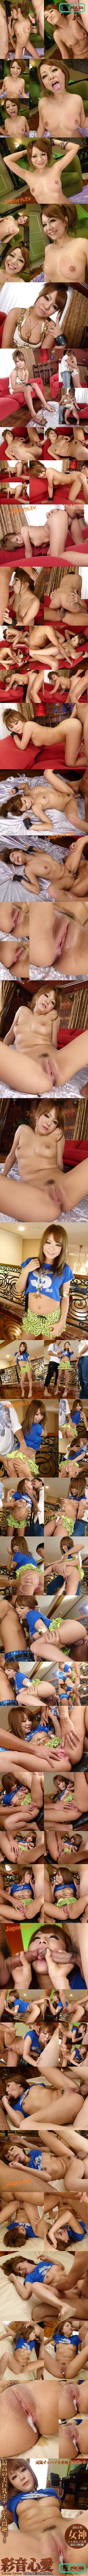 [SMD 39] S Model 39 : Cocoa Ayane 彩音心愛 SMD Cocoa Ayane